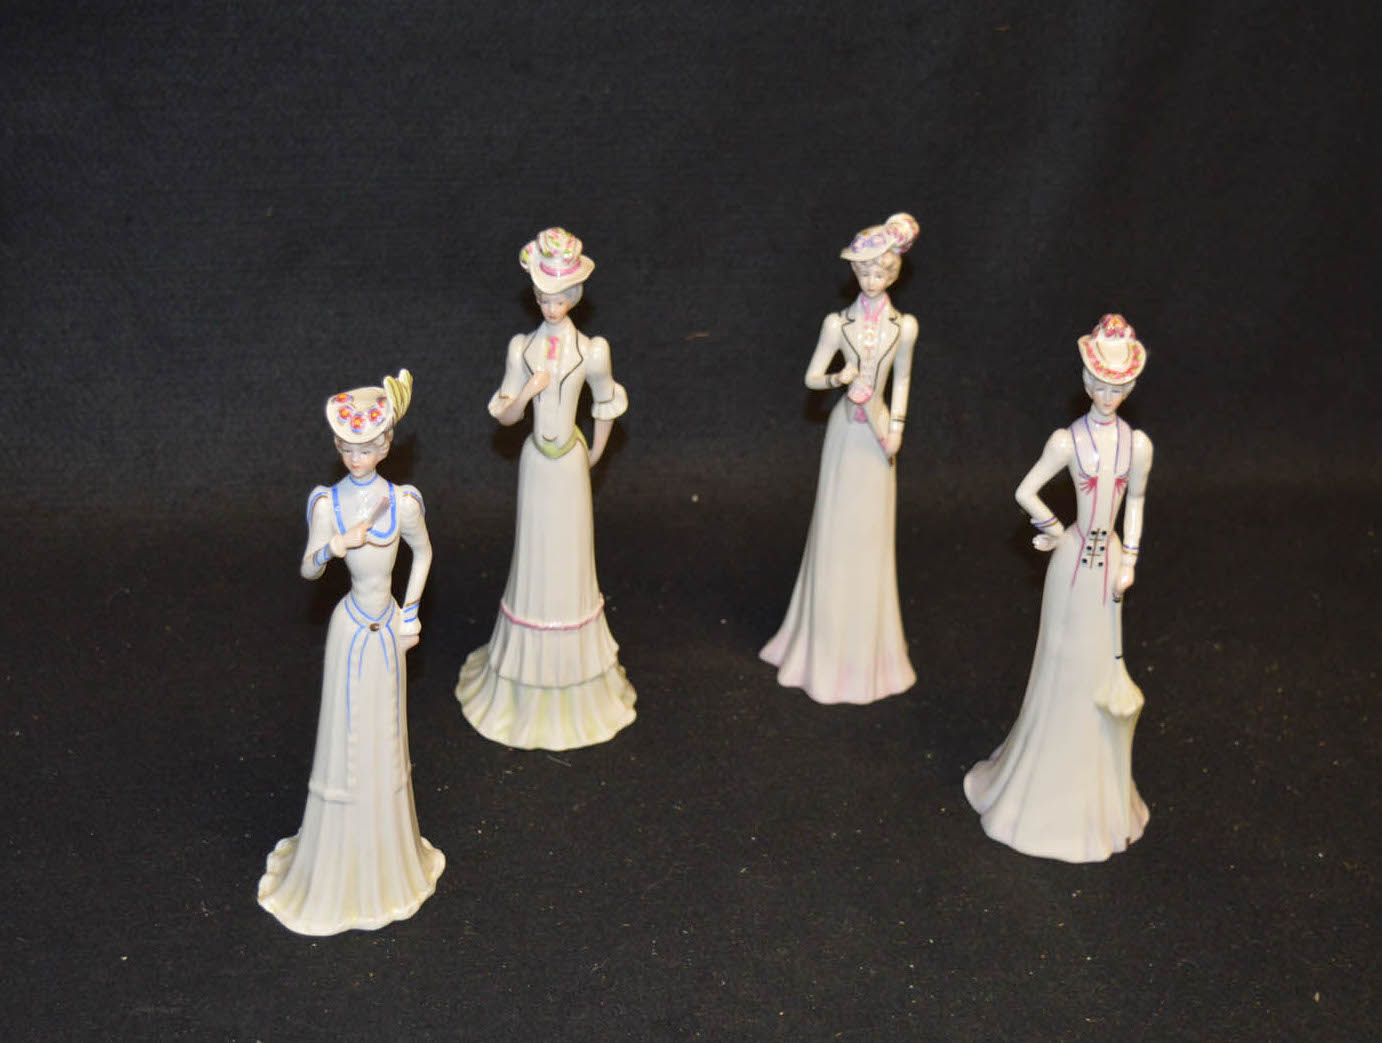 Lot 39 - An Epoca Set of Four Figurines